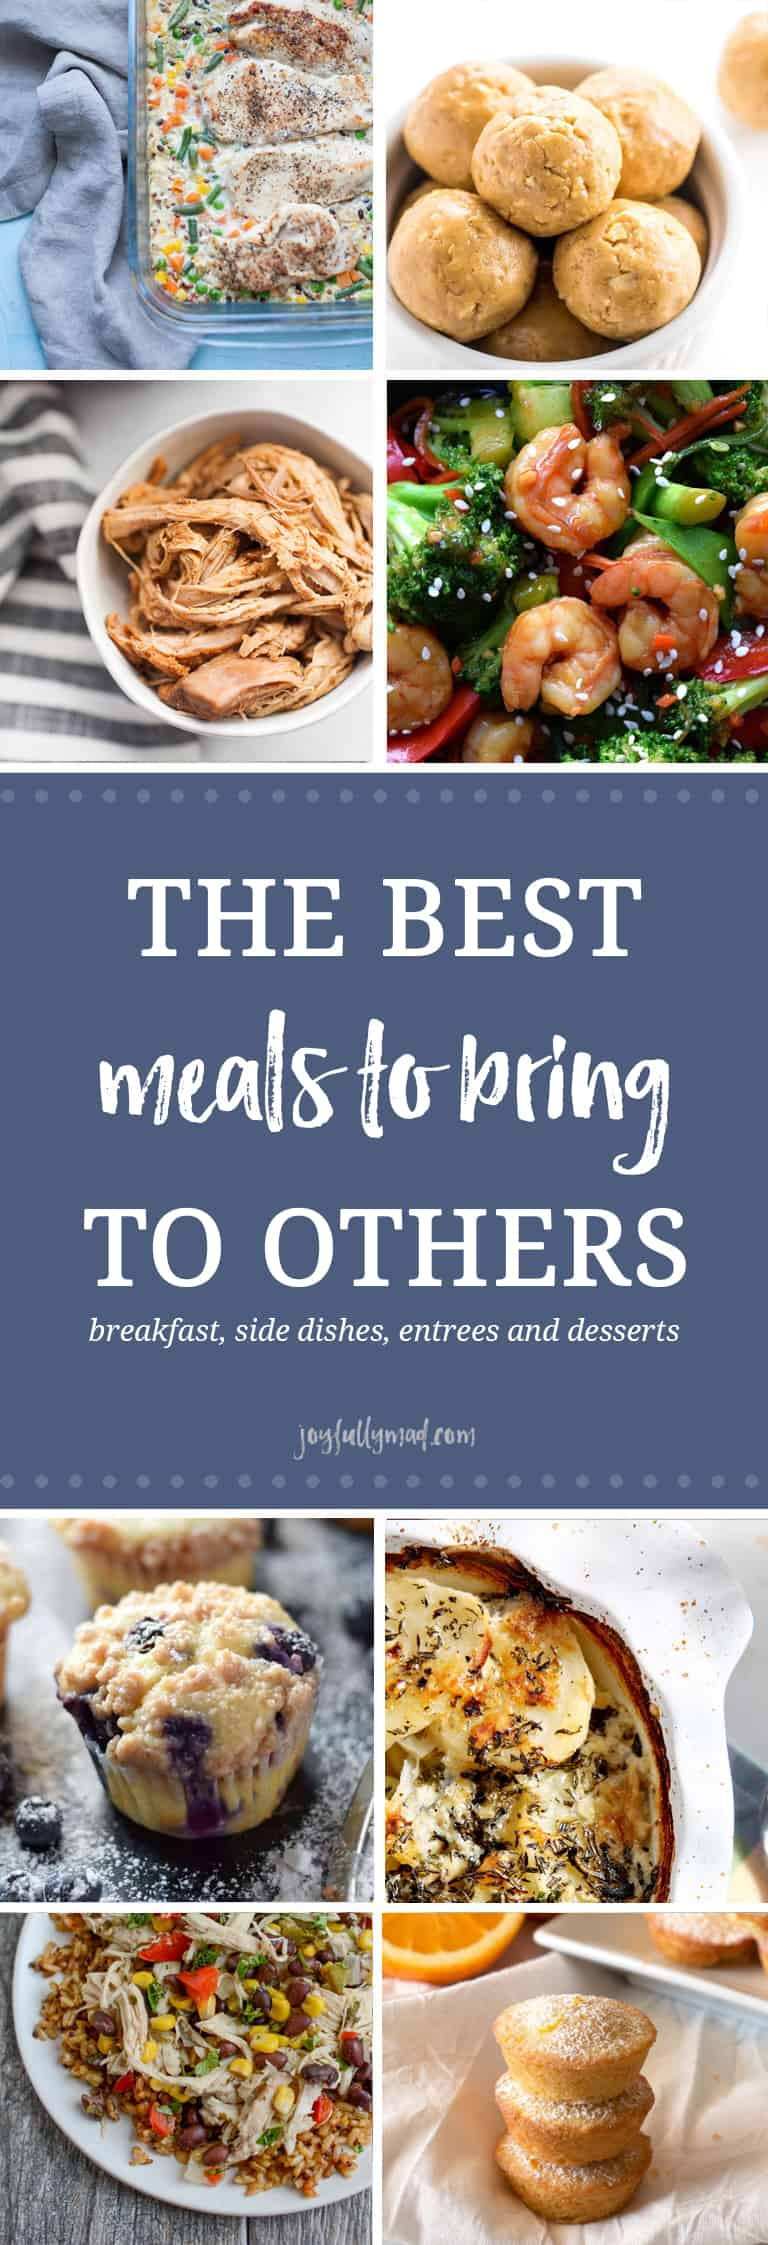 There are so many options of meals that you can bring to someone! Breakfast items like muffins and casseroles, snacks and side dishes, main courses like casseroles and soup, and of course, desserts are all great things to bring over to someone in need.?